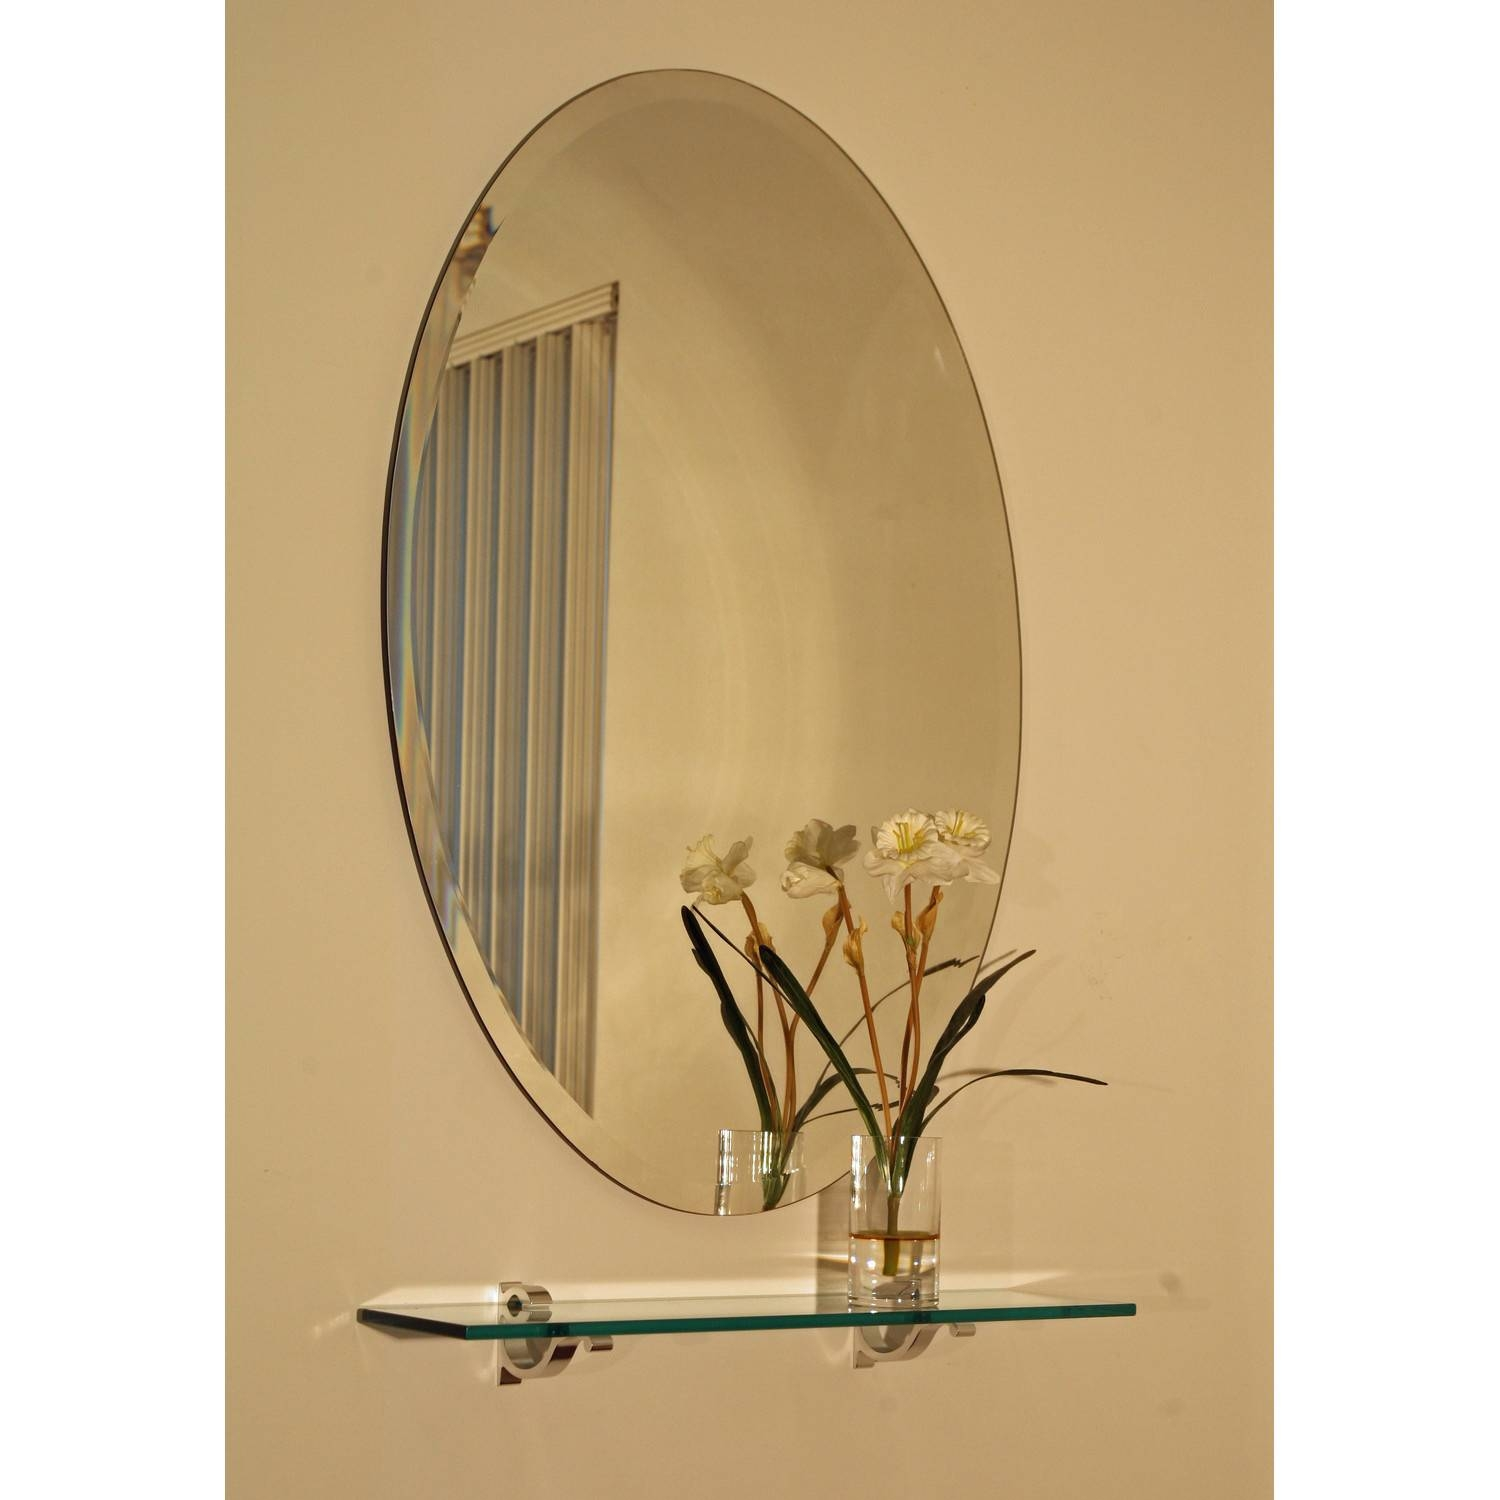 Regency 24 X 36 Oval Beveled Edge Mirror Spancraft Wall Mirror inside Beveled Edge Oval Mirrors (Image 15 of 25)